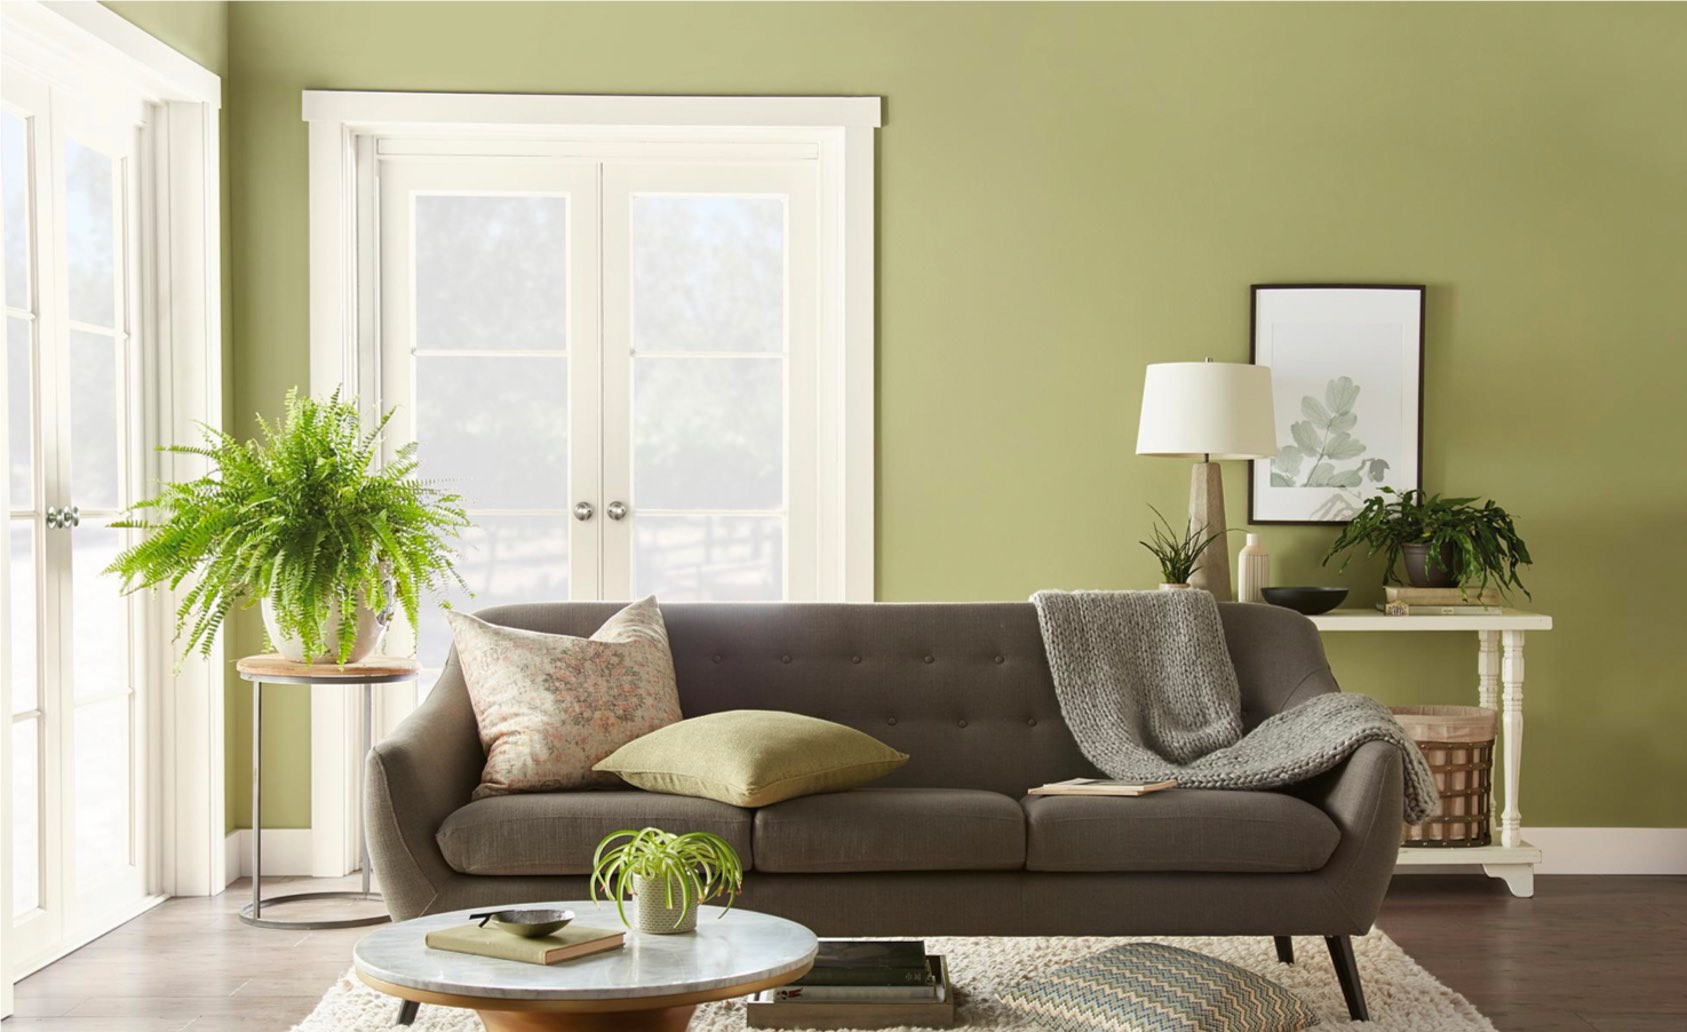 Behr 2020 Color of the Year is Back to Nature S340-4